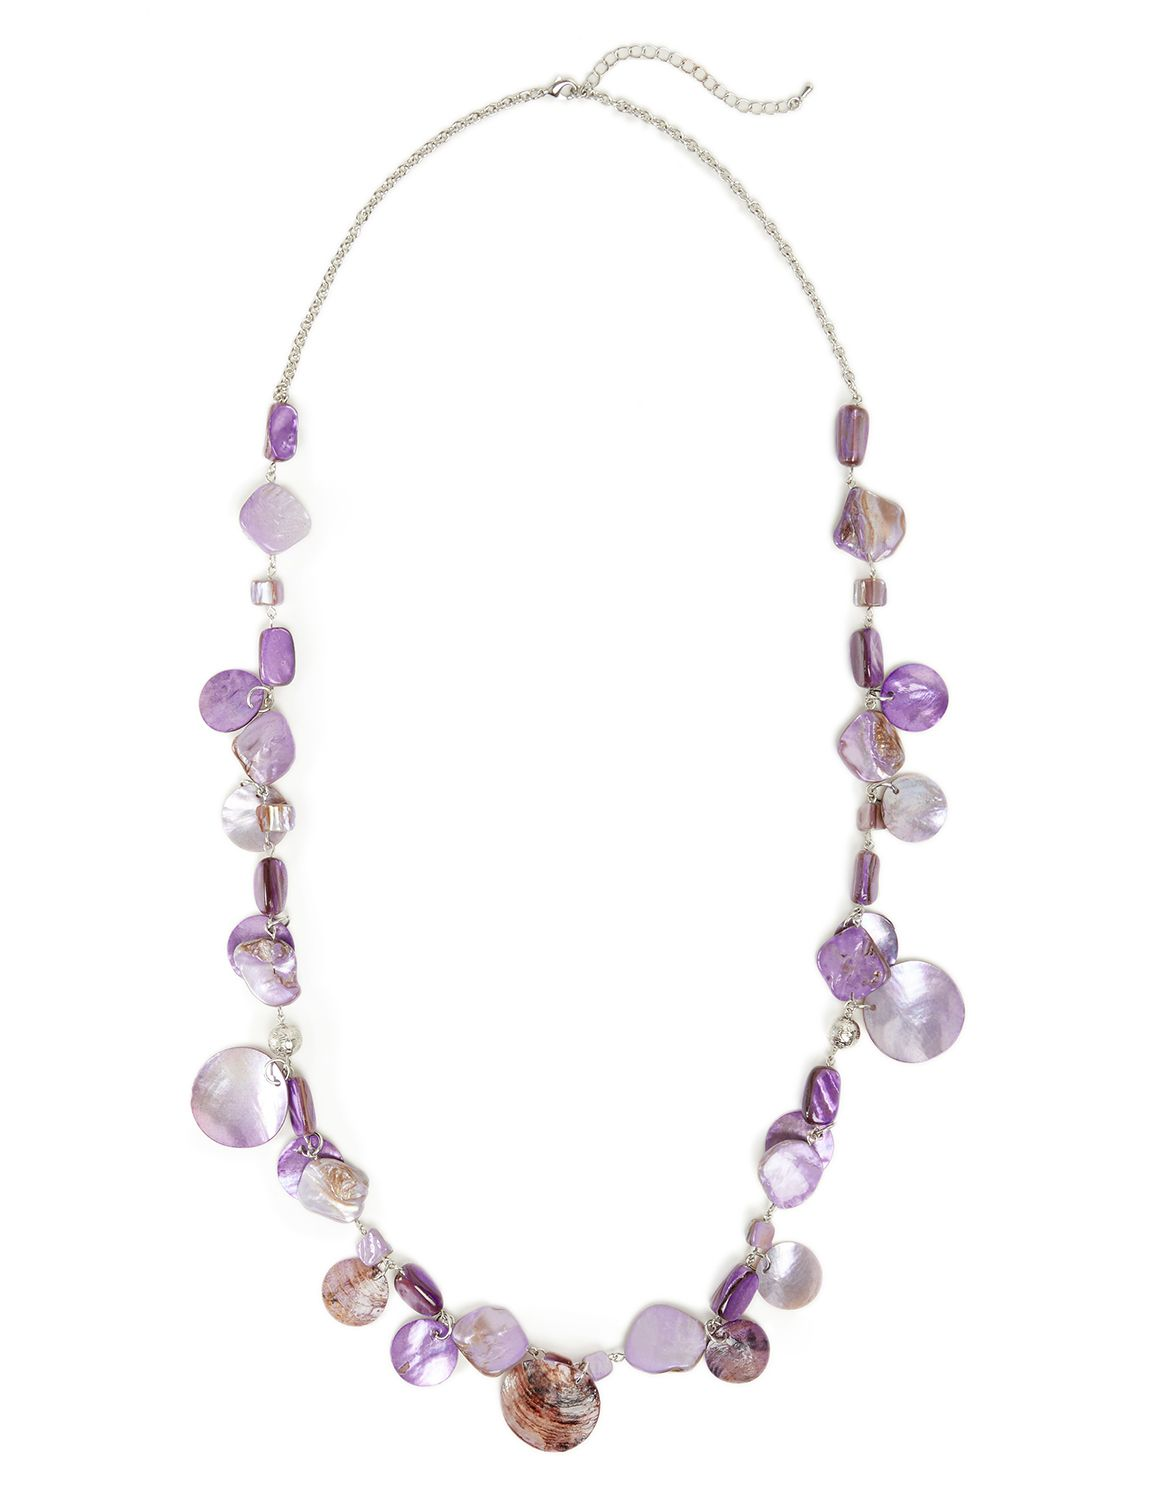 Lilac Seashell Necklace LM Long Shell rope purp NK KT0721N1 MP-300099951